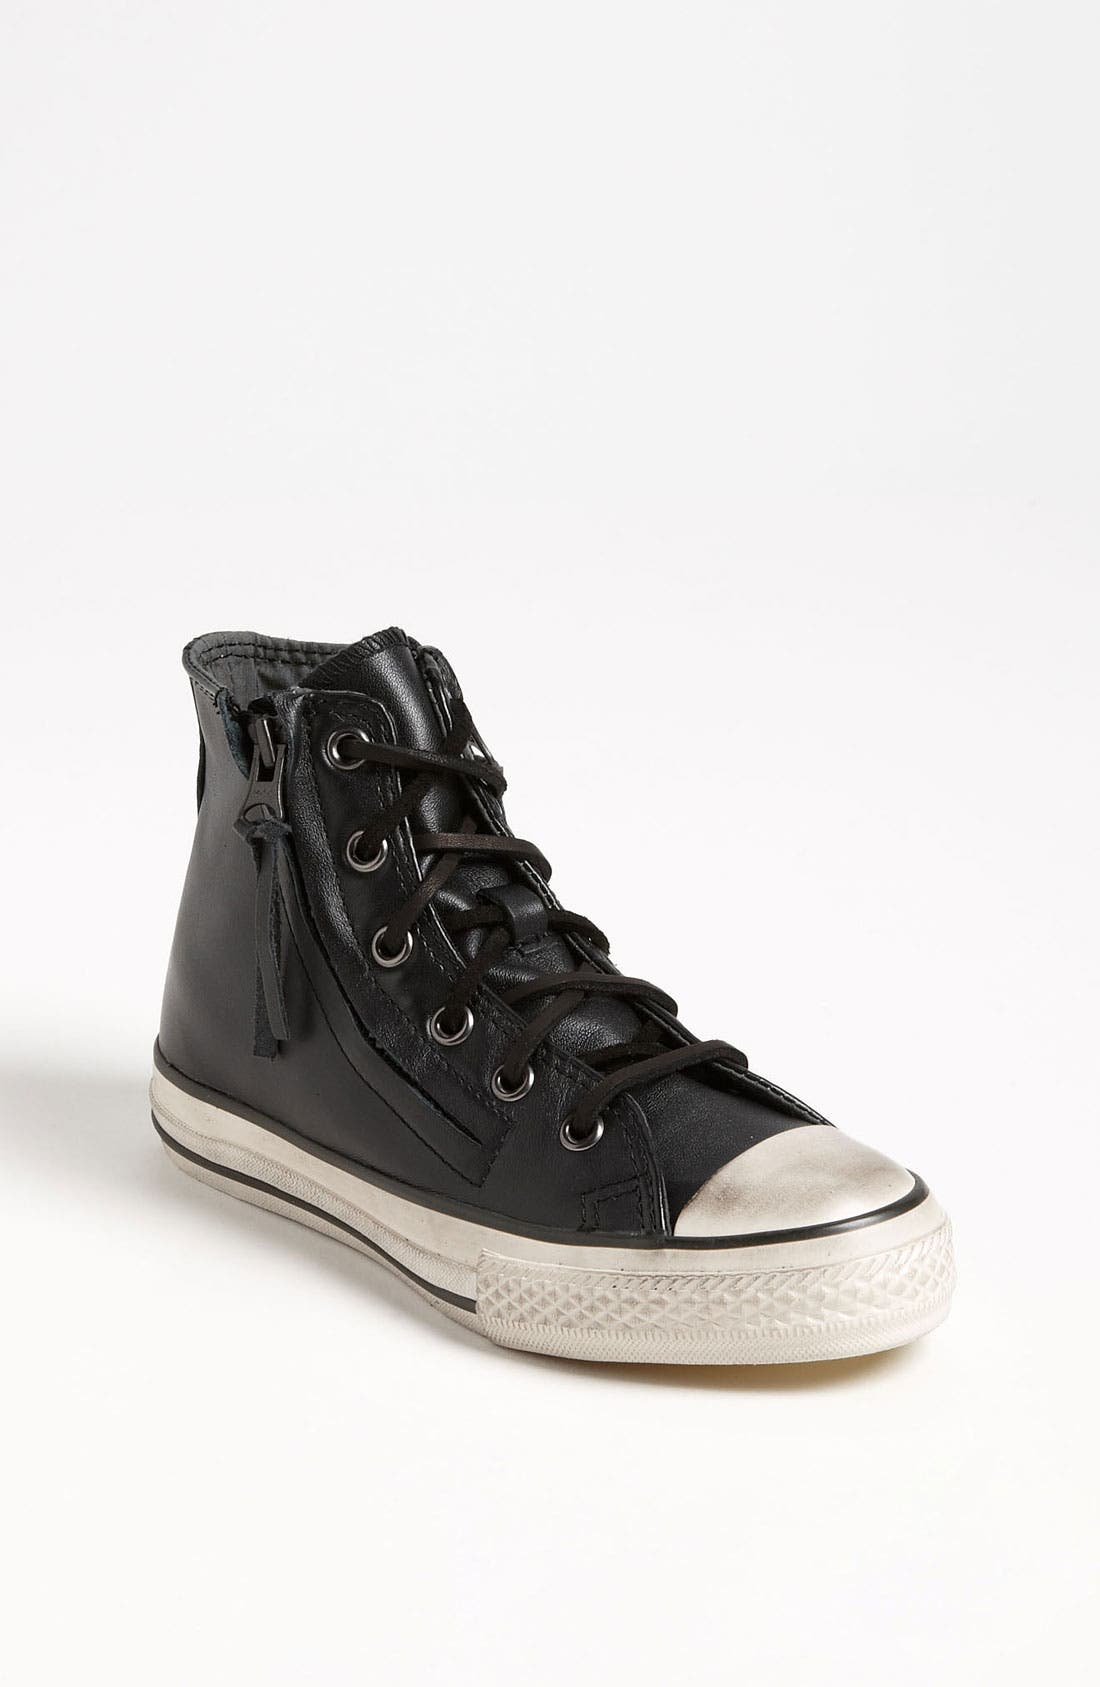 Alternate Image 1 Selected - Converse by John Varvatos 'Double Zip' High Top Sneaker (Toddler, Little Kid & Big Kid)